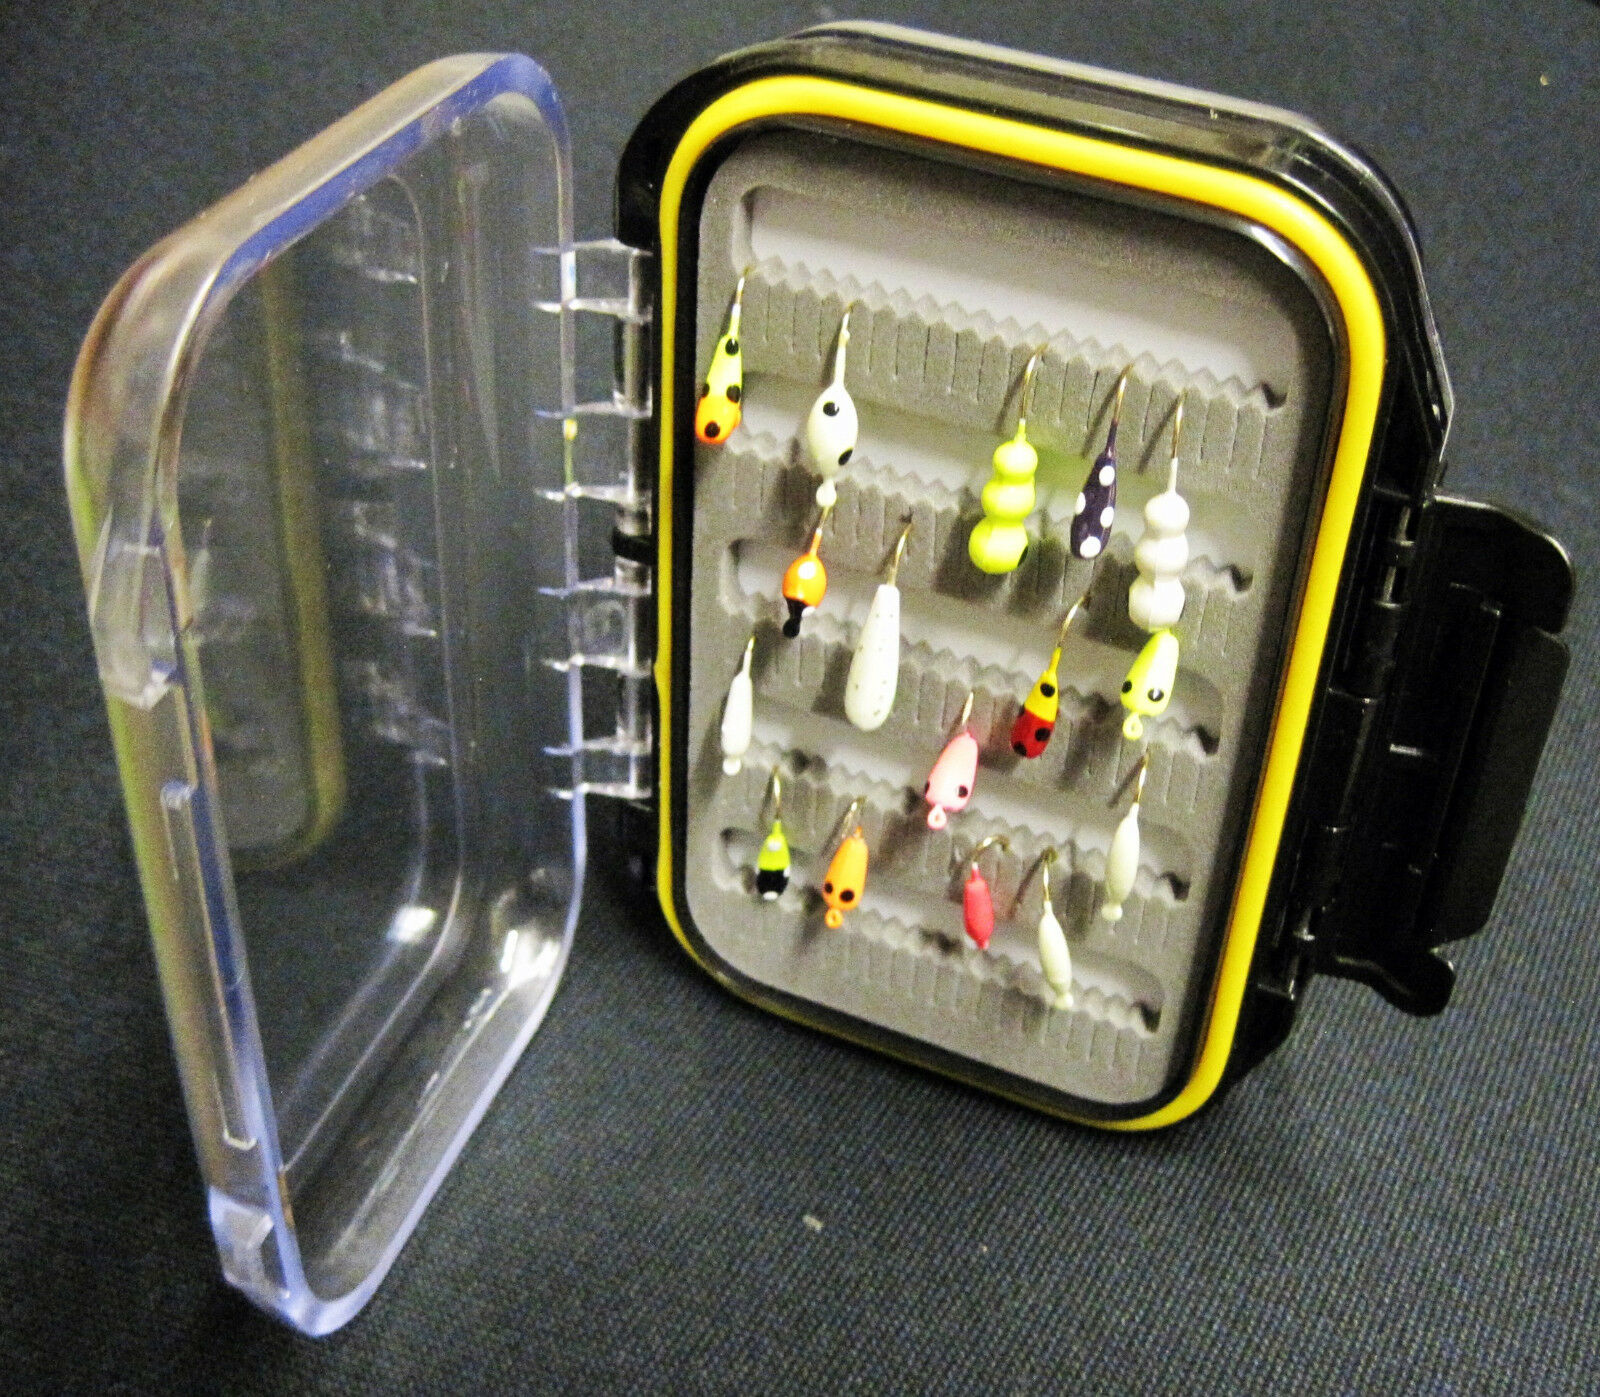 16 32 48 64 Glow Jigs Plus Double Sided Fly Jig Box - Ice Fishing Perch Panfish